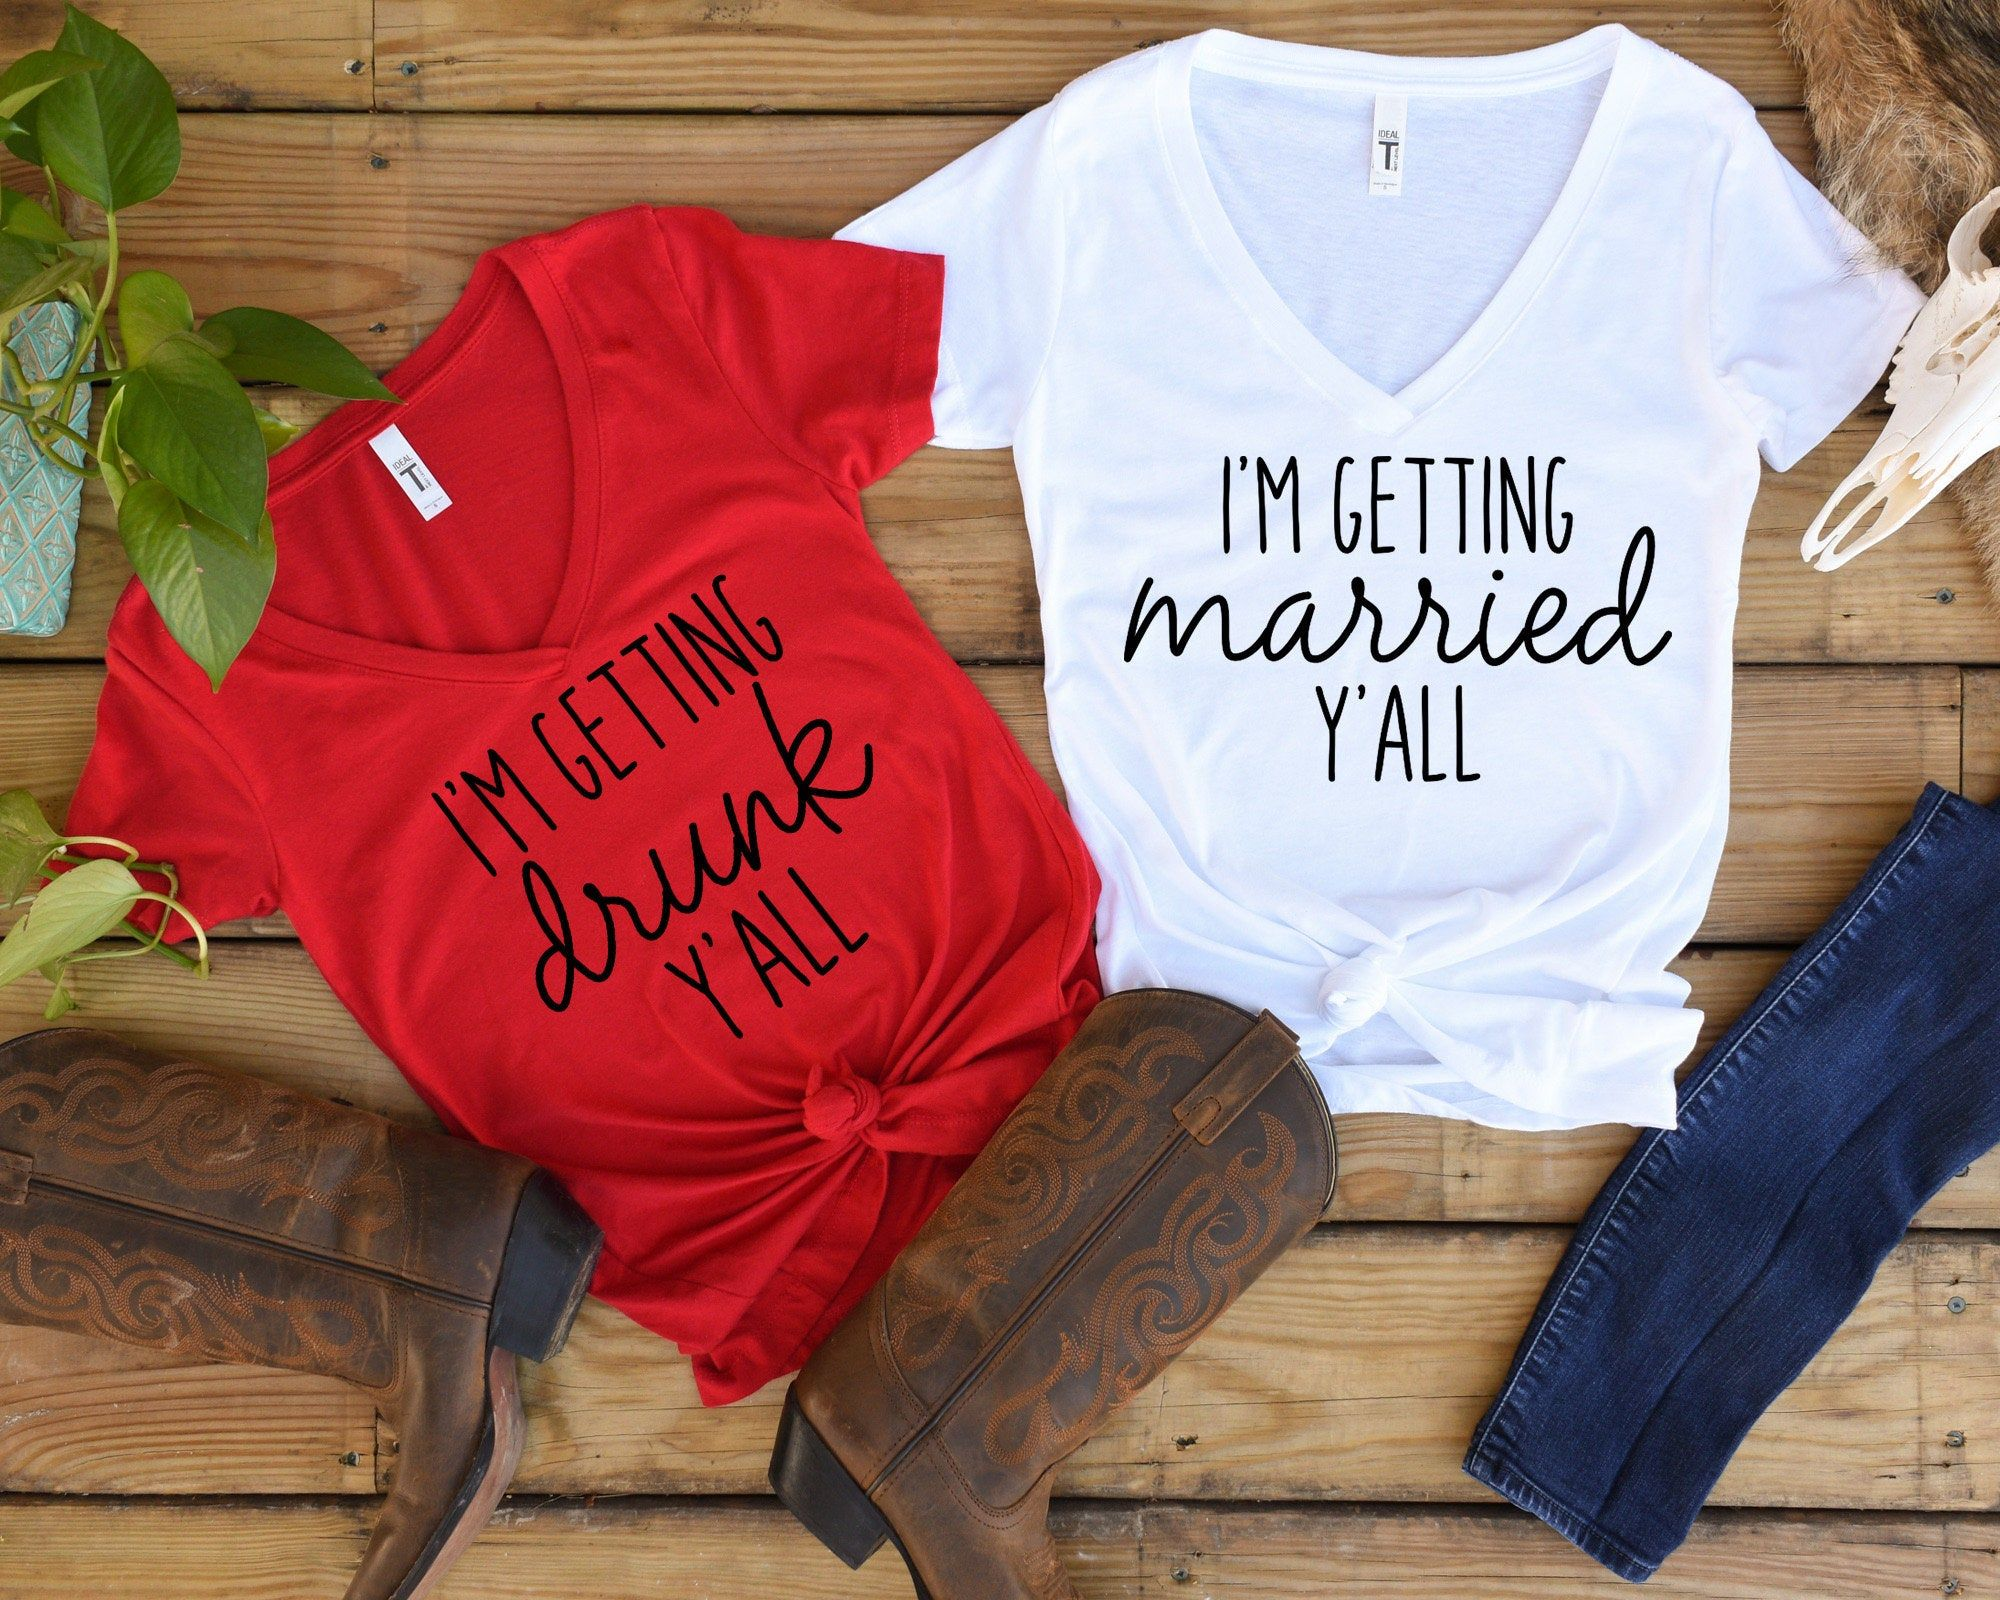 Nashville Bachelorette Party Shirts Southern Charm Shirt Etsy In 2020 Nashville Bachelorette Party Shirts Nashville Bachelorette Party Bachelorette Party Shirts